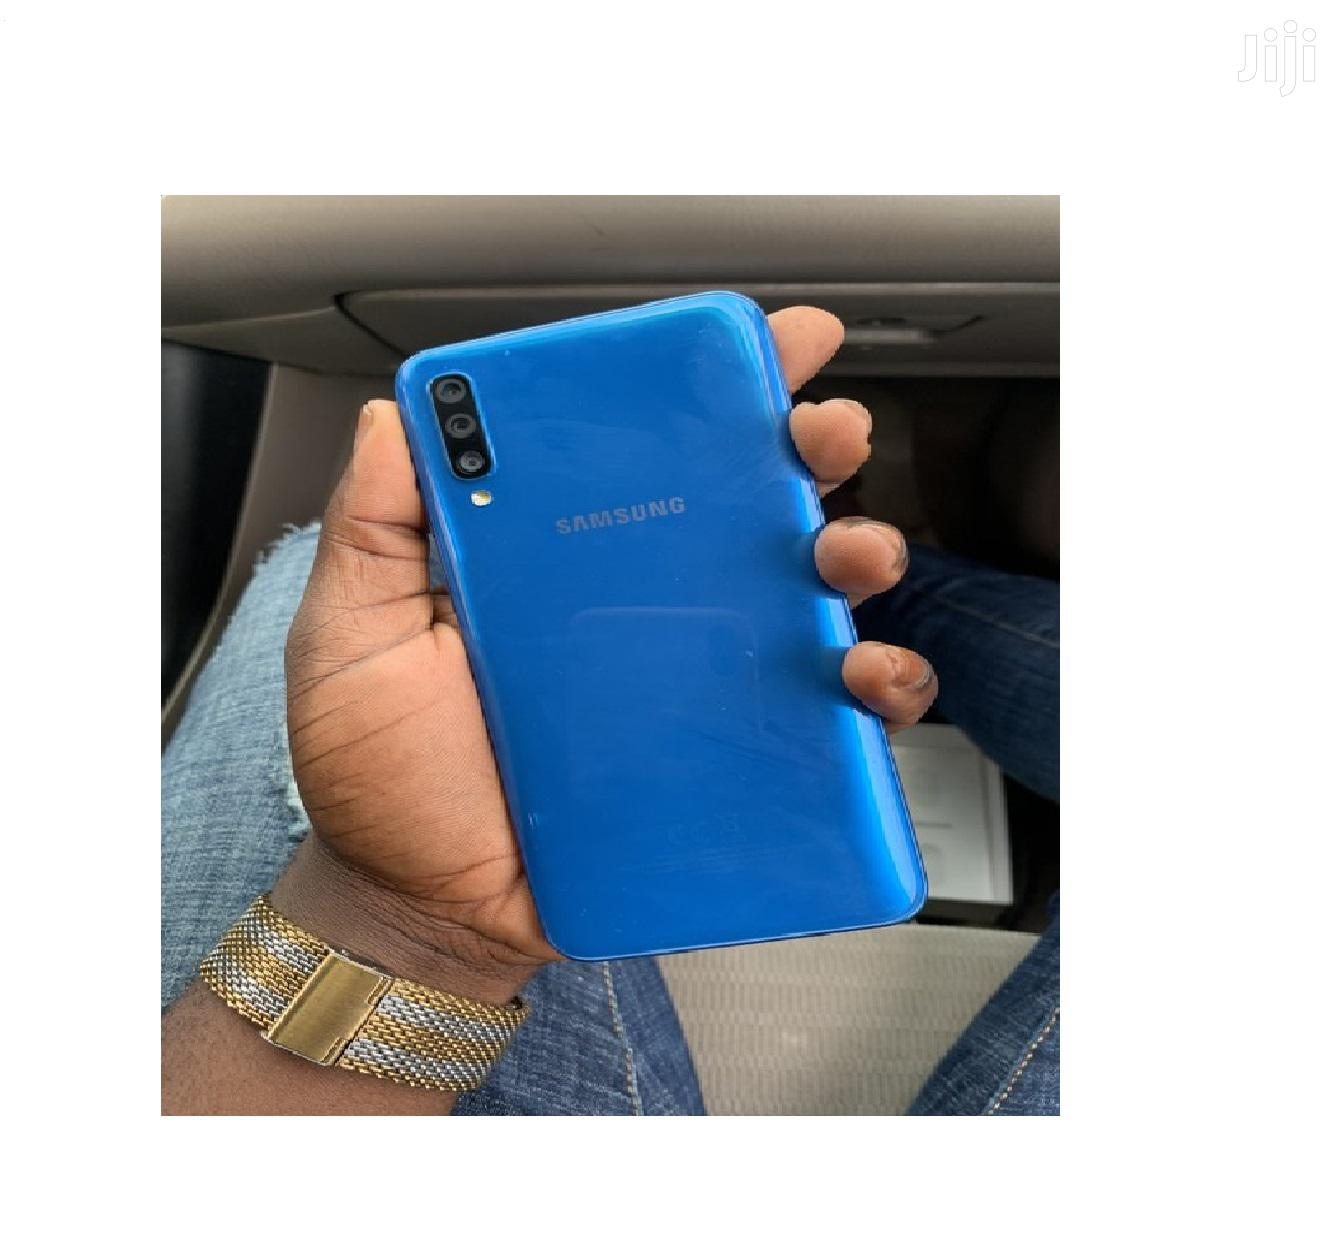 Samsung Galaxy A50 128 GB Black | Mobile Phones for sale in Tema Metropolitan, Greater Accra, Ghana